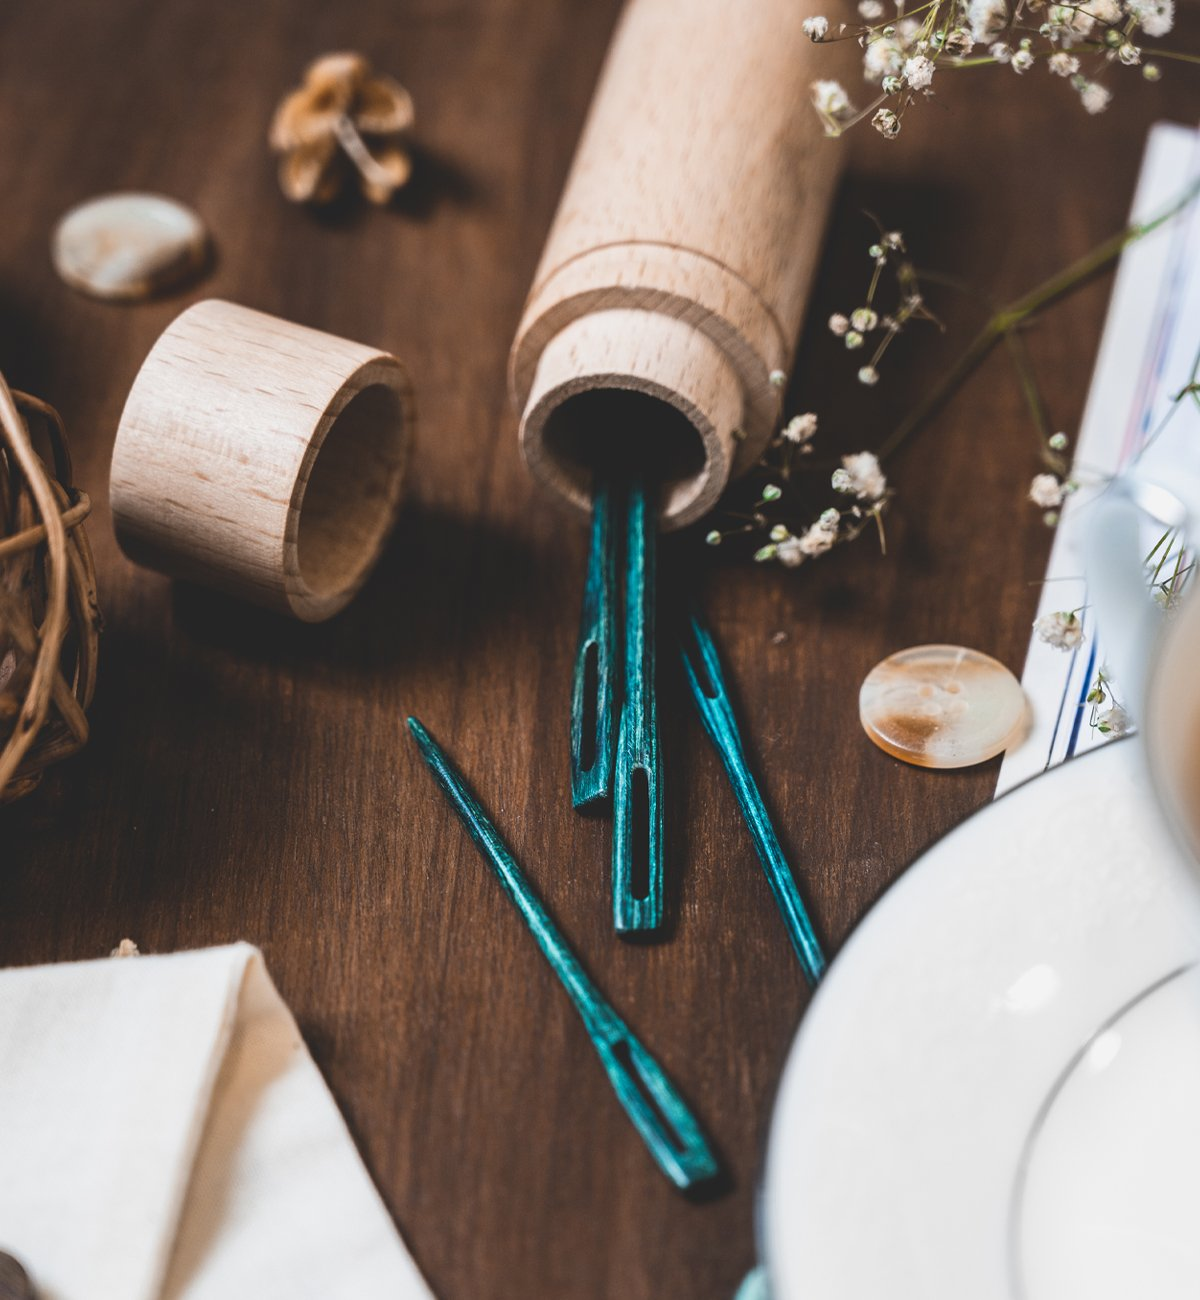 Darning Needles - Teal Wooden (The Mindful Collection)